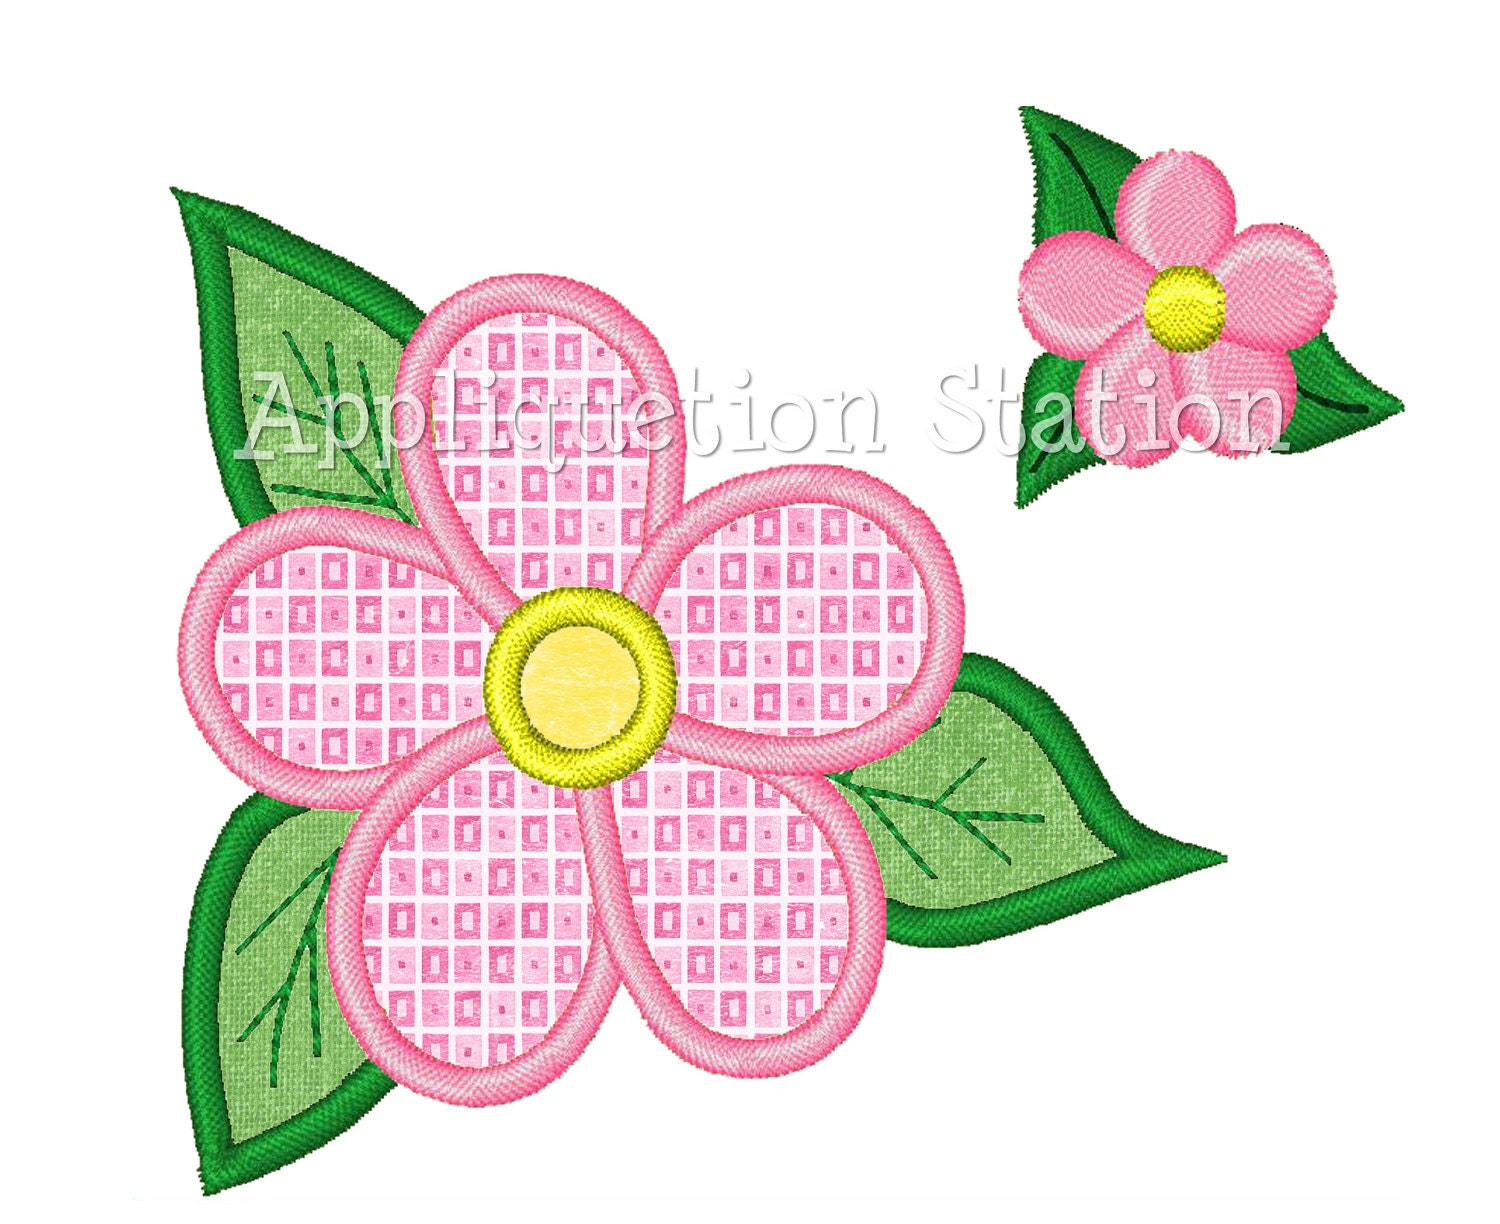 Flower applique designs imgkid the image kid